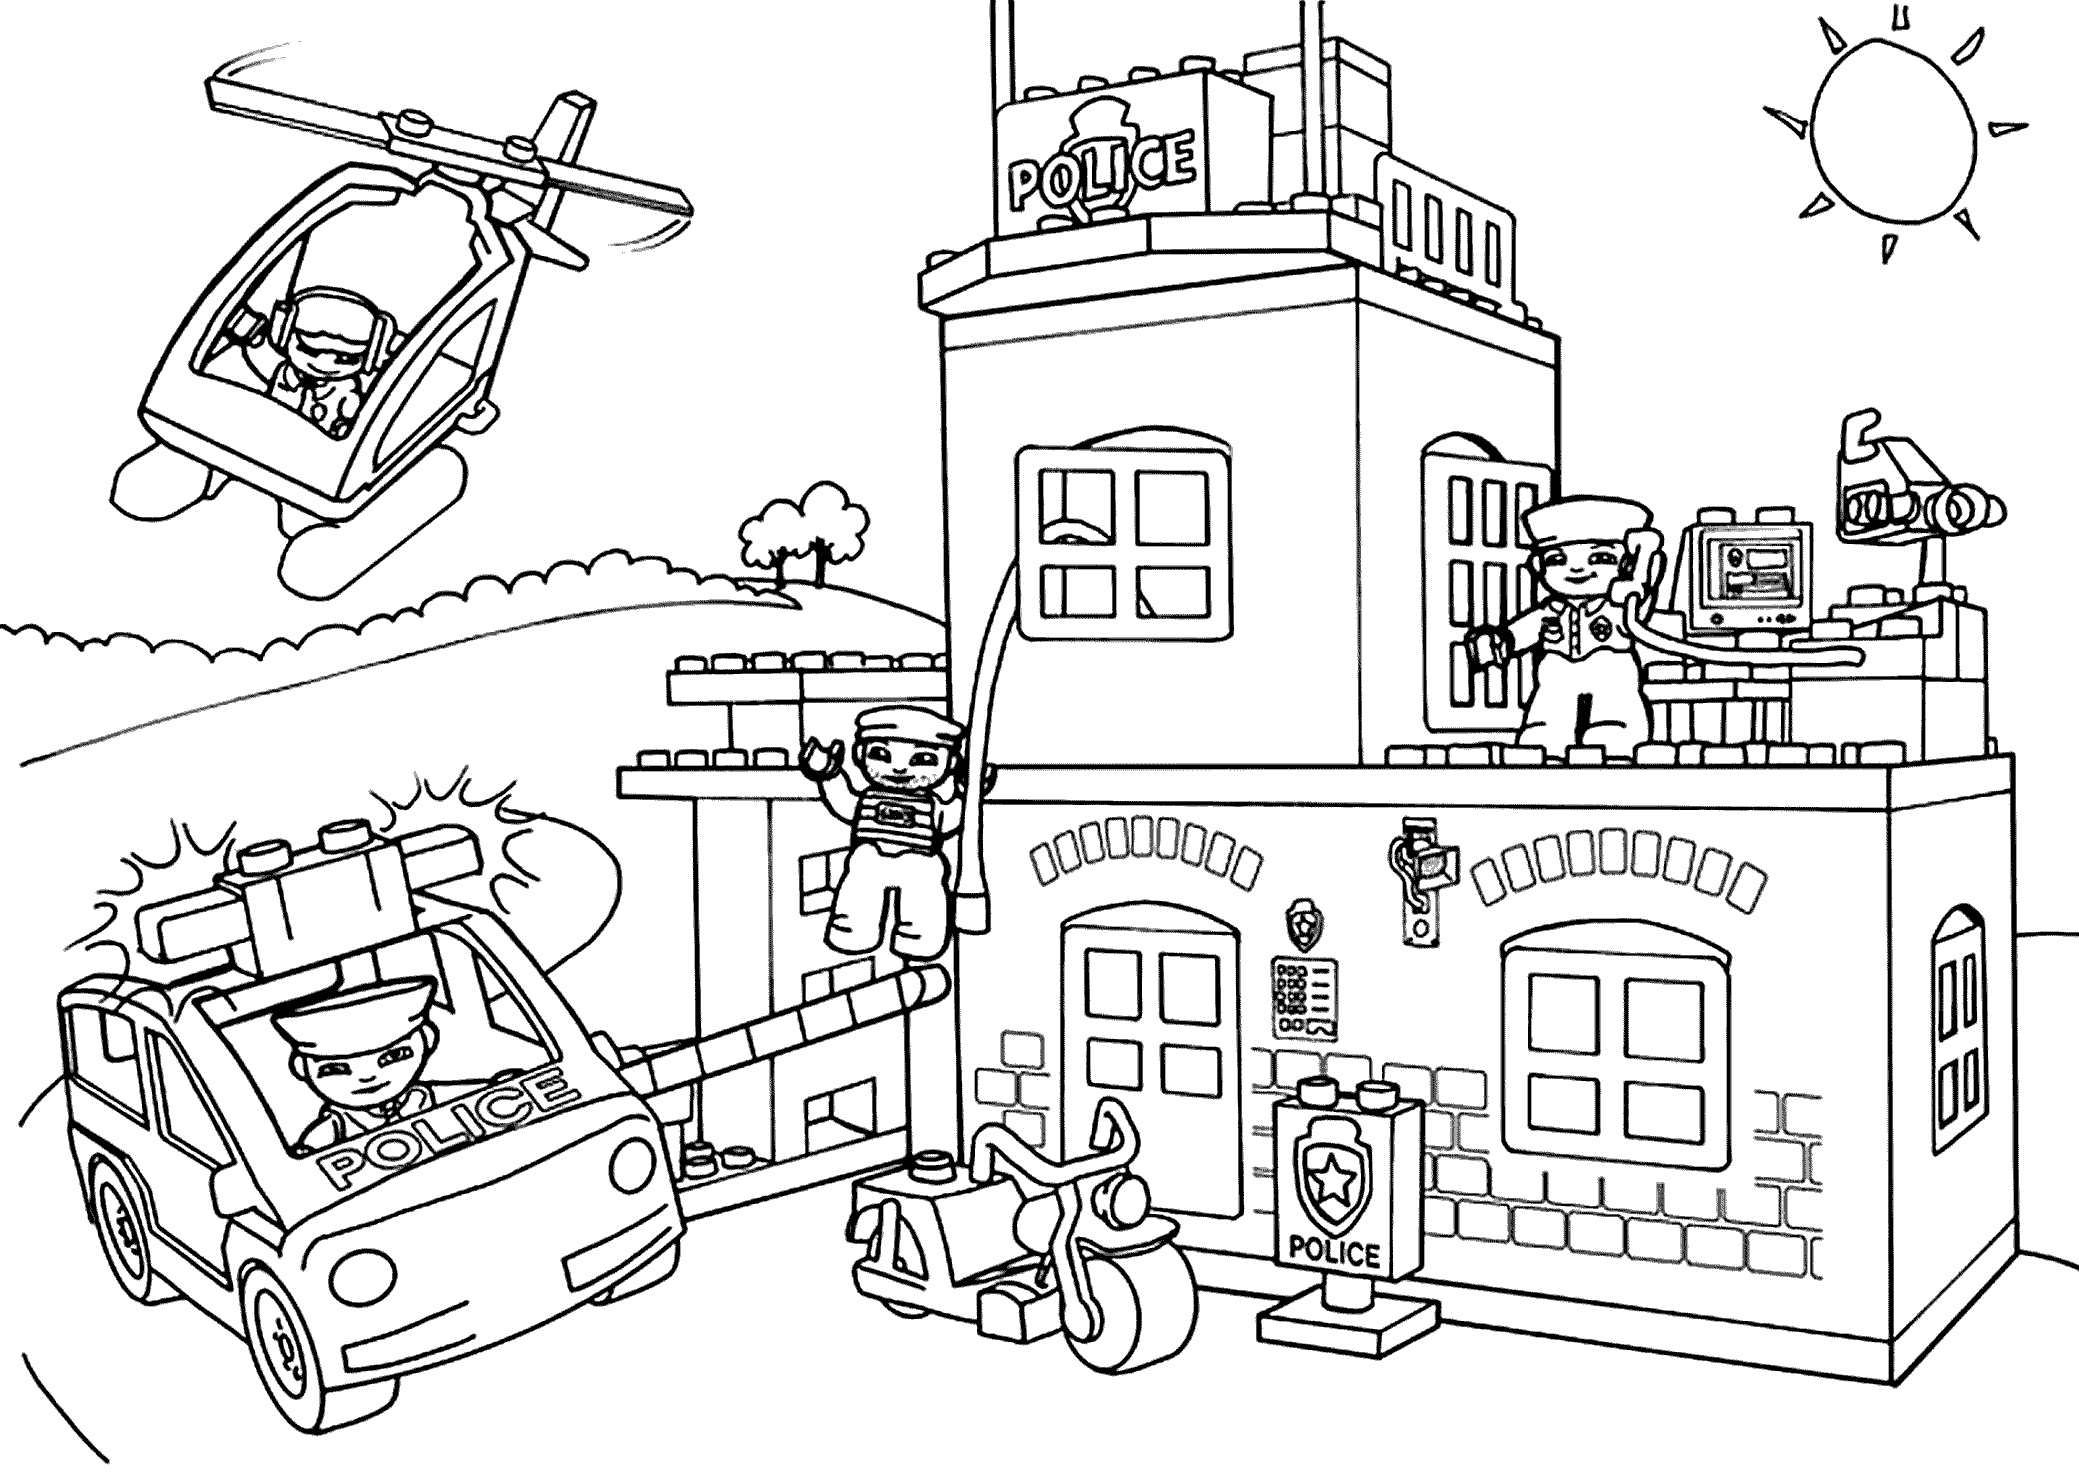 firefighter coloring page - coloring page lego city